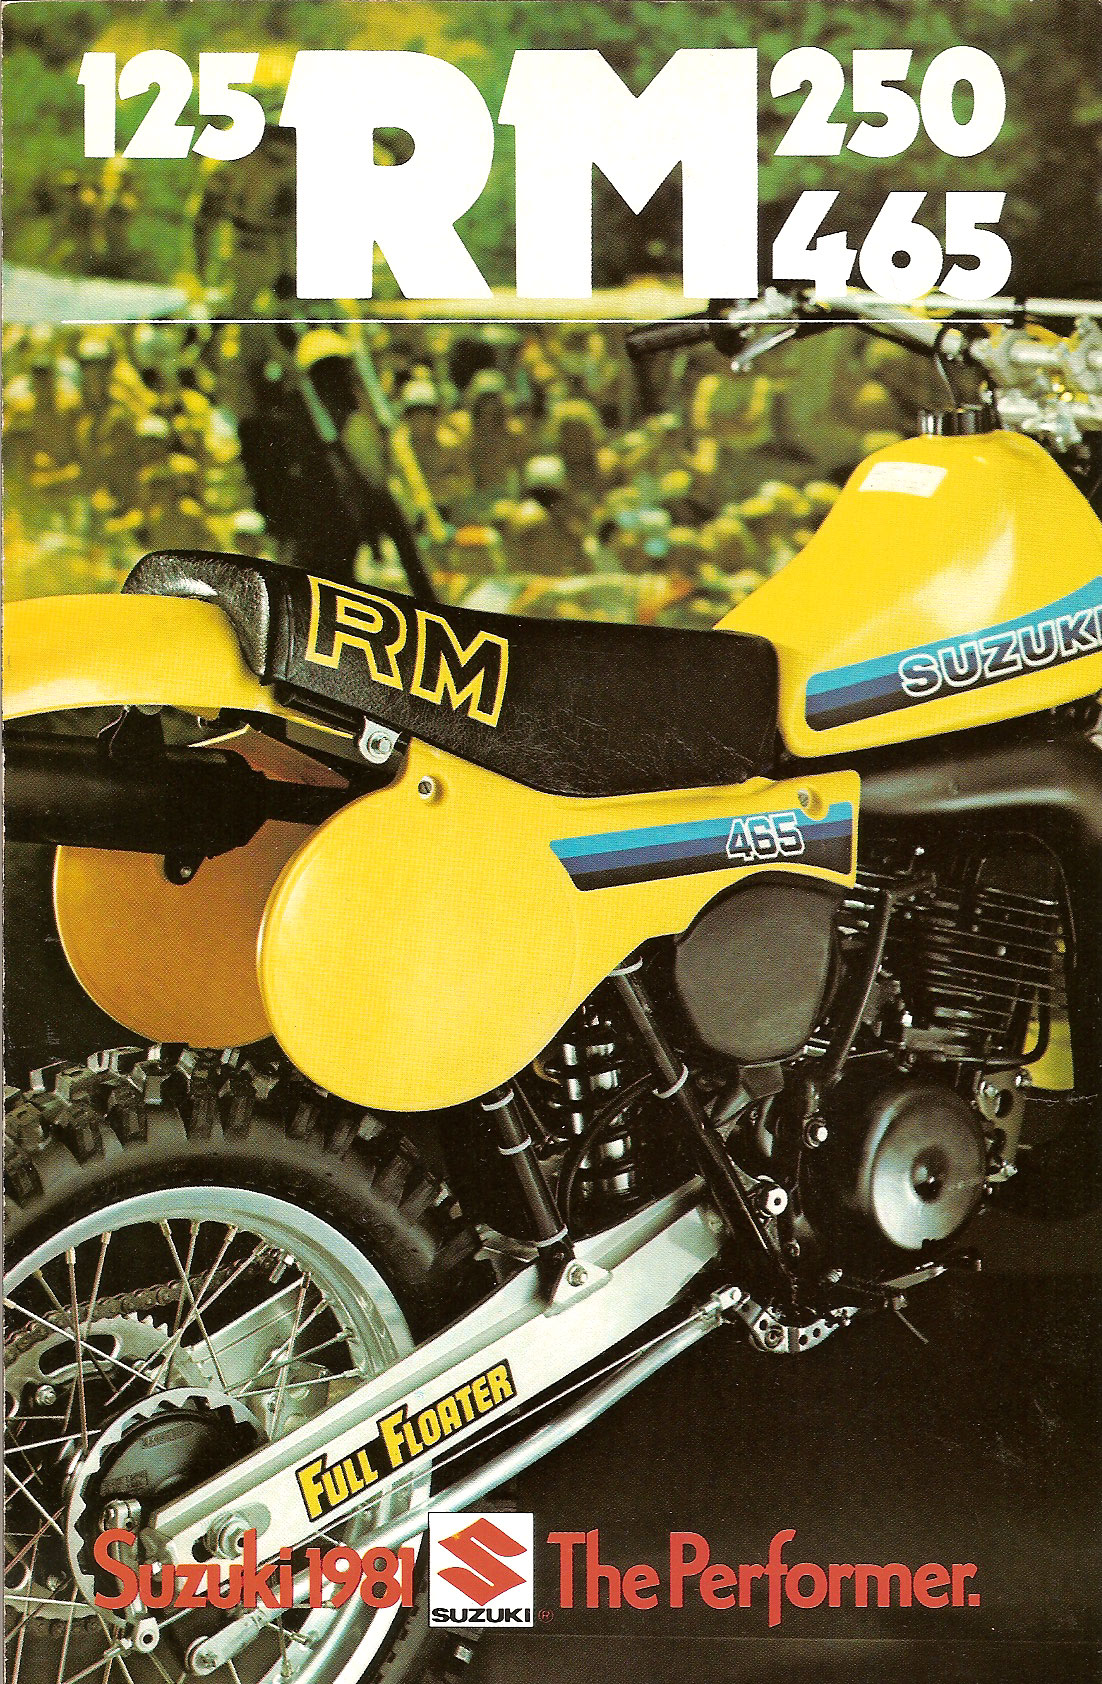 Suzuki Rm Model Specifications